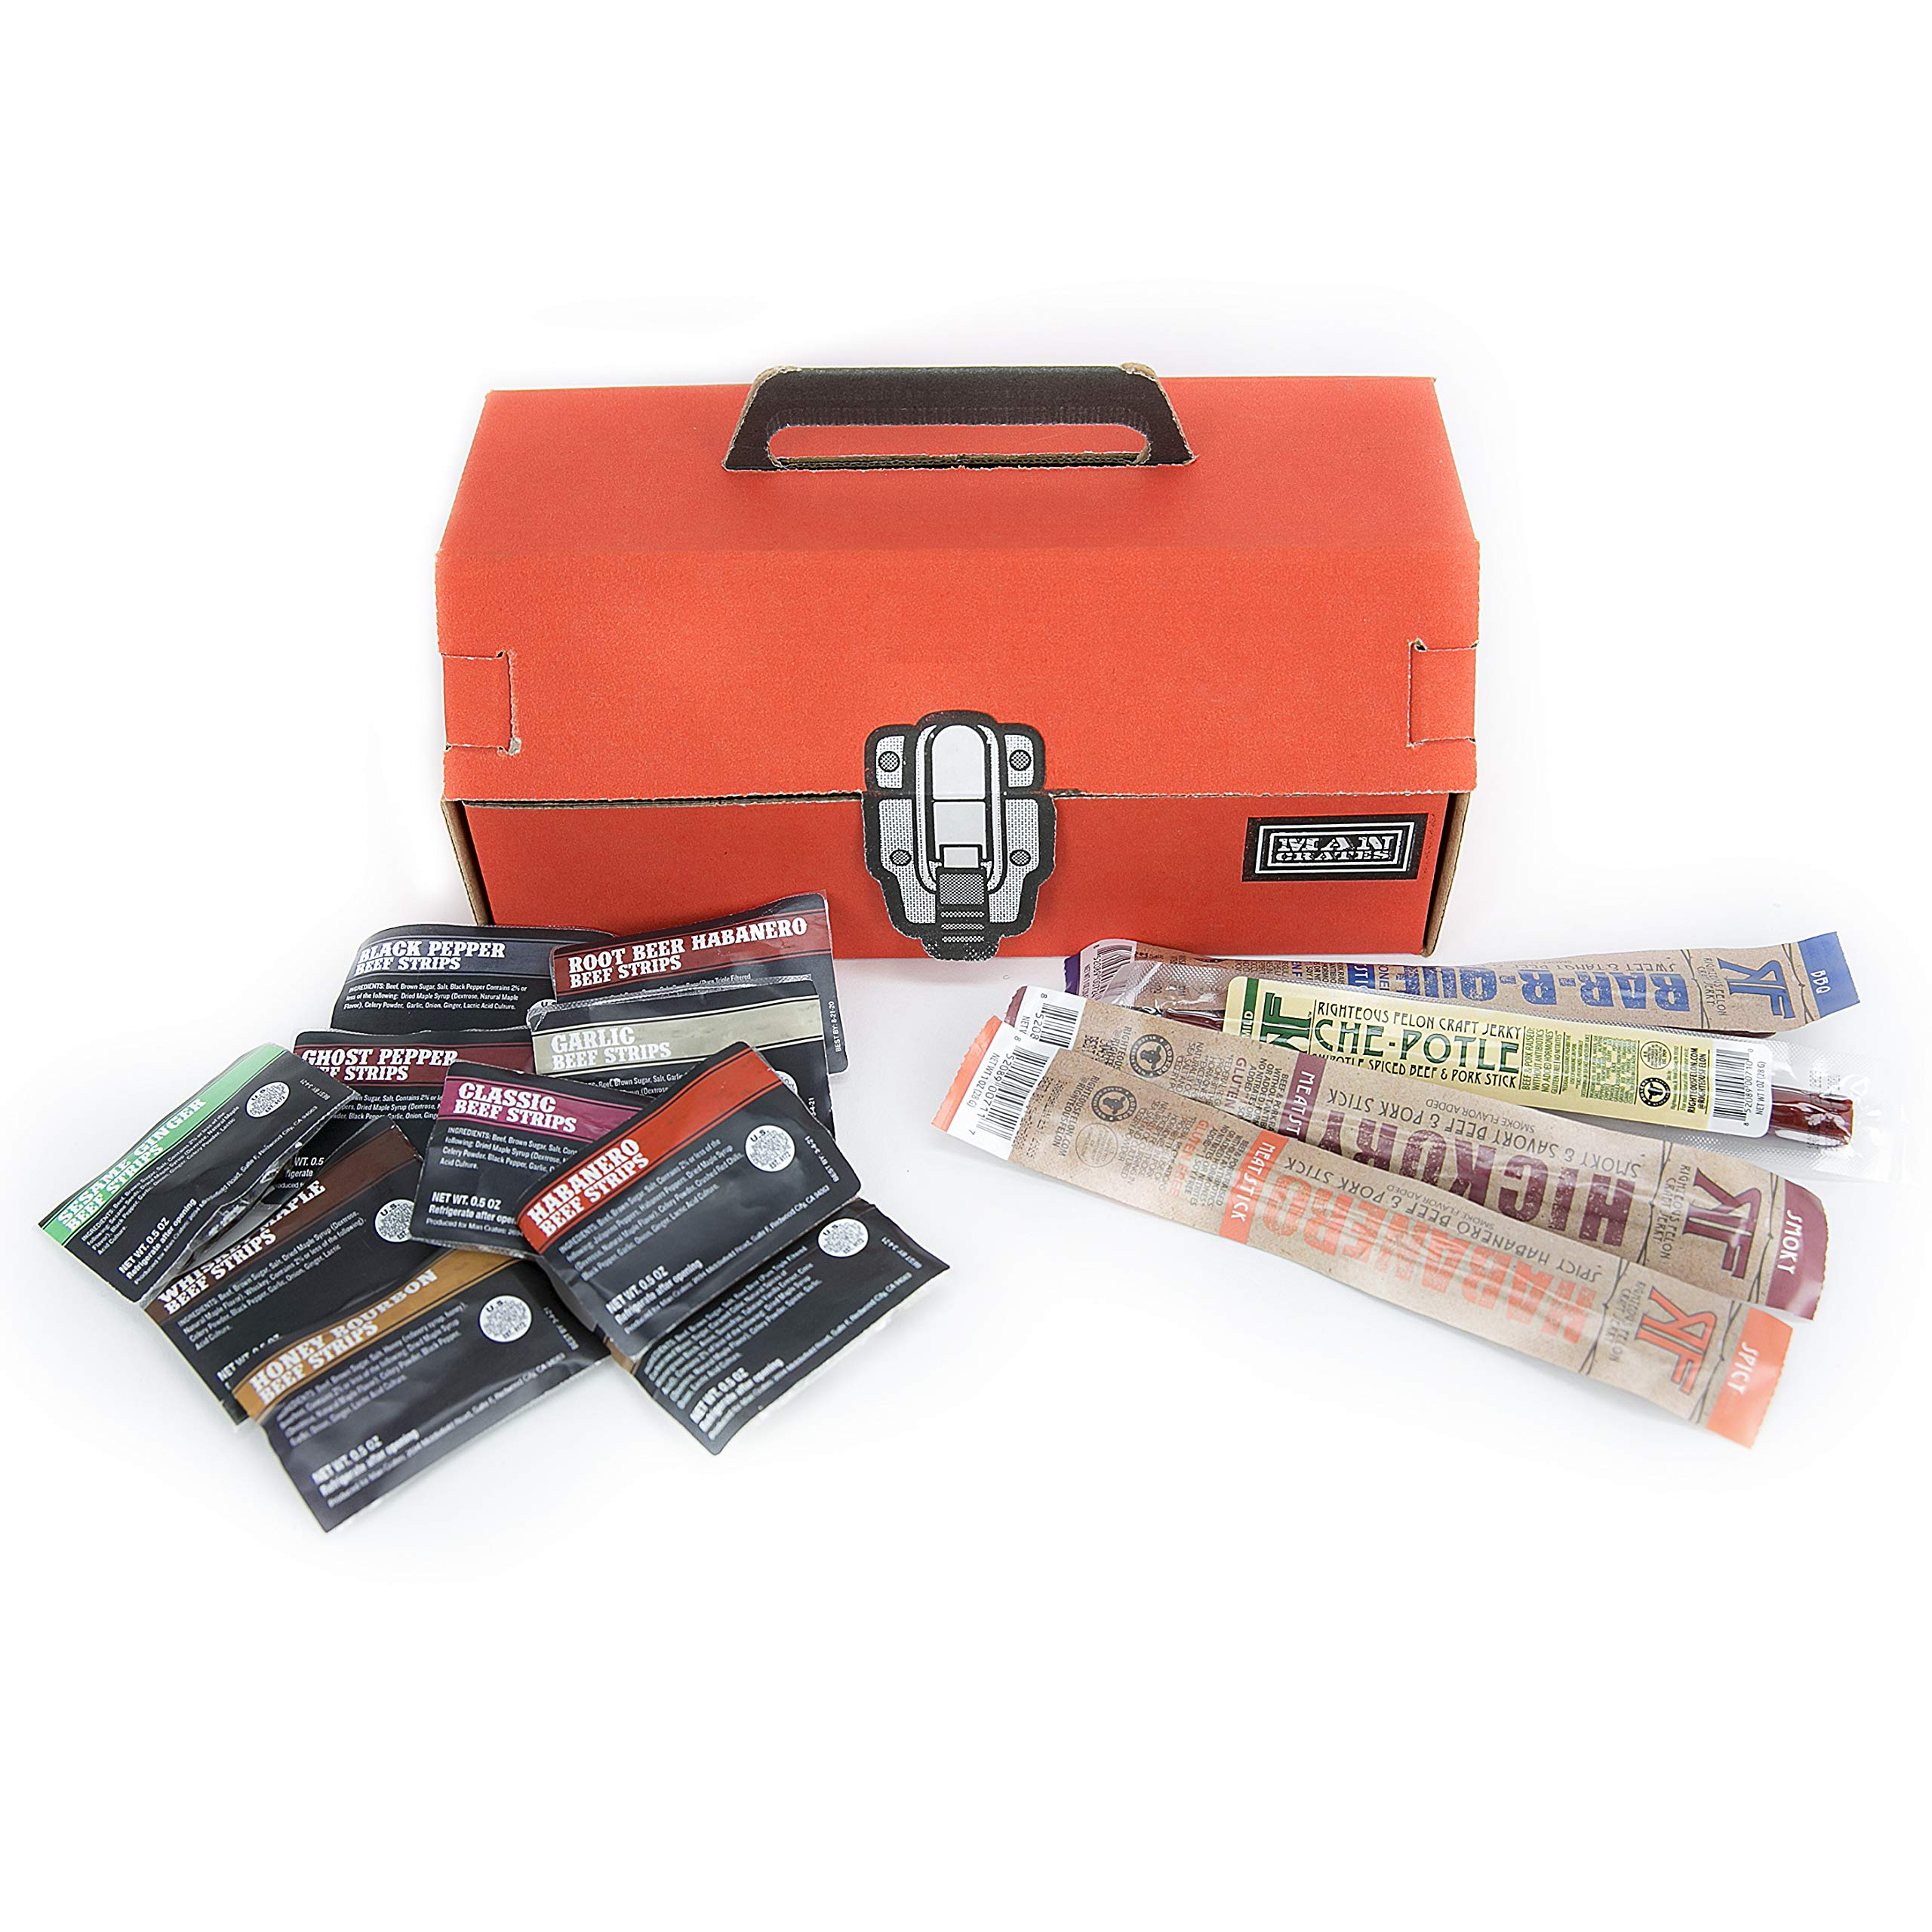 Man Crates Jerky Tool Box - Unique Gift For Men - Includes 14 Delicious Beef Jerky Flavors - In A Delightfully Surprising Tool-Shaped Box by Man Crates (Image #1)